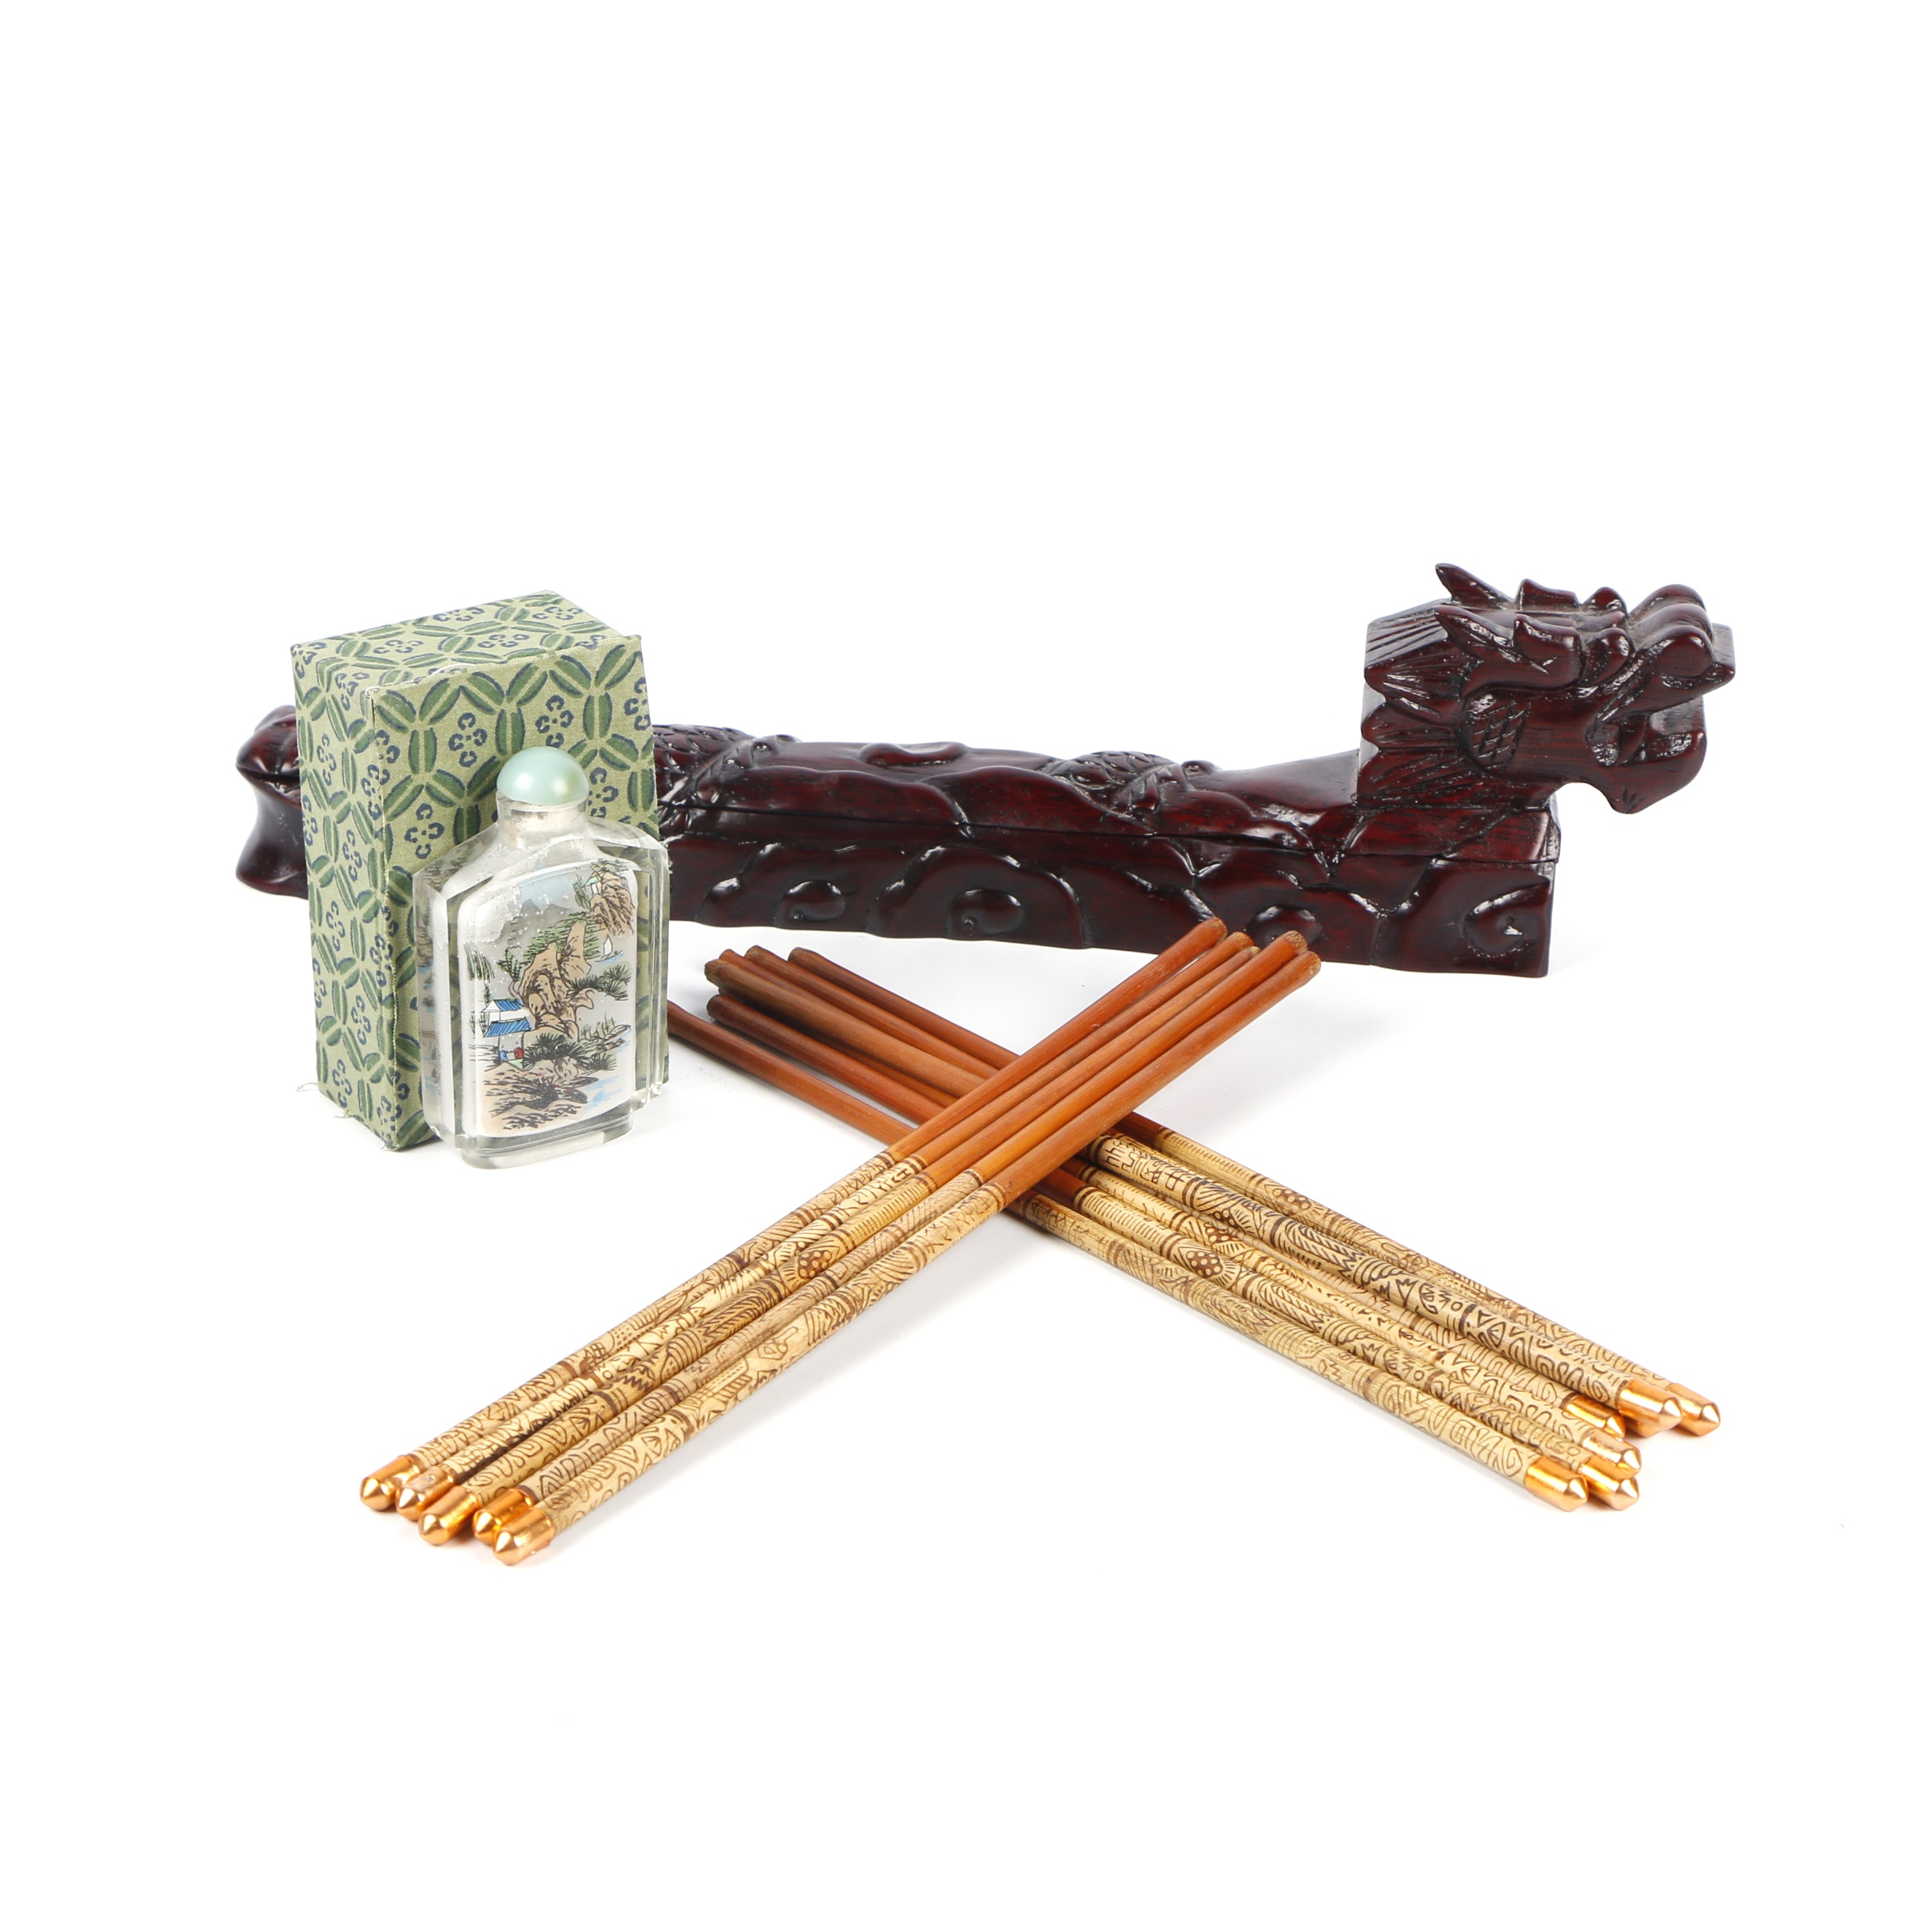 Chinese Carved Wood Dragon Chopstick Box with Chopsticks and Snuff Bottle